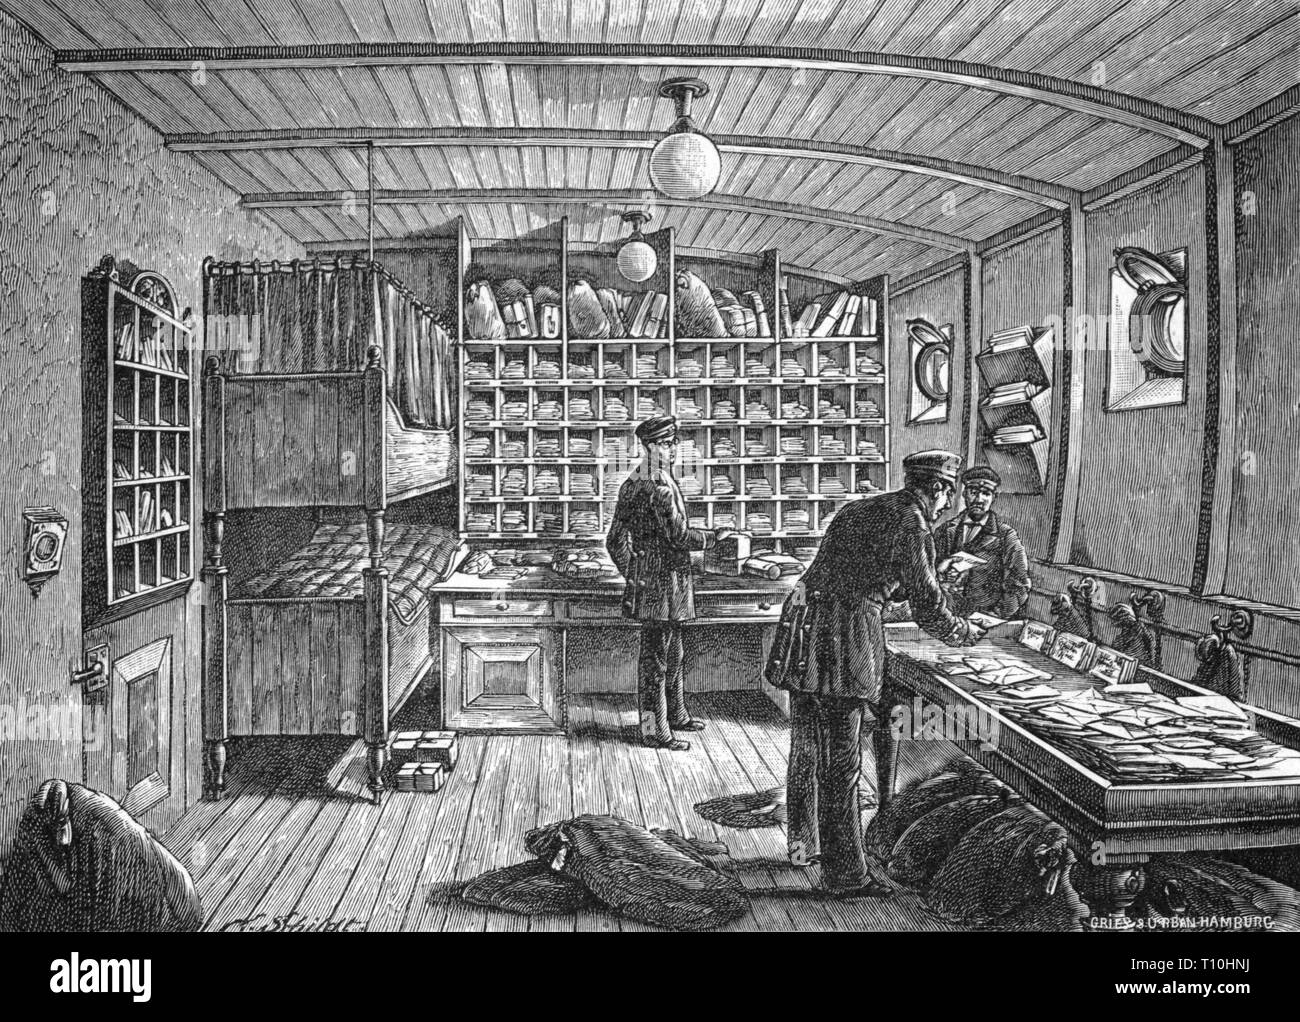 geography / travel historic, mail, post office, postal chamber on a steamship of the HAPAG, interior view, wood engraving, later 19th century, Hamburg-Amerikanische Packetfahrt-Actien-Gesellschaft, German Reichspost (Reich Mail), Germany, German Empire, Imperial Era, mail ship, ships, steamers, mail steamer, communication, communications, transportation, navigation, transport, letter, letters, sorting, sort, assort, assorting, labour, labor, working, post office clerk, postal work, postal clerk, civil servant, civil servants, people, everyday life, dai, Artist's Copyright has not to be cleared - Stock Image